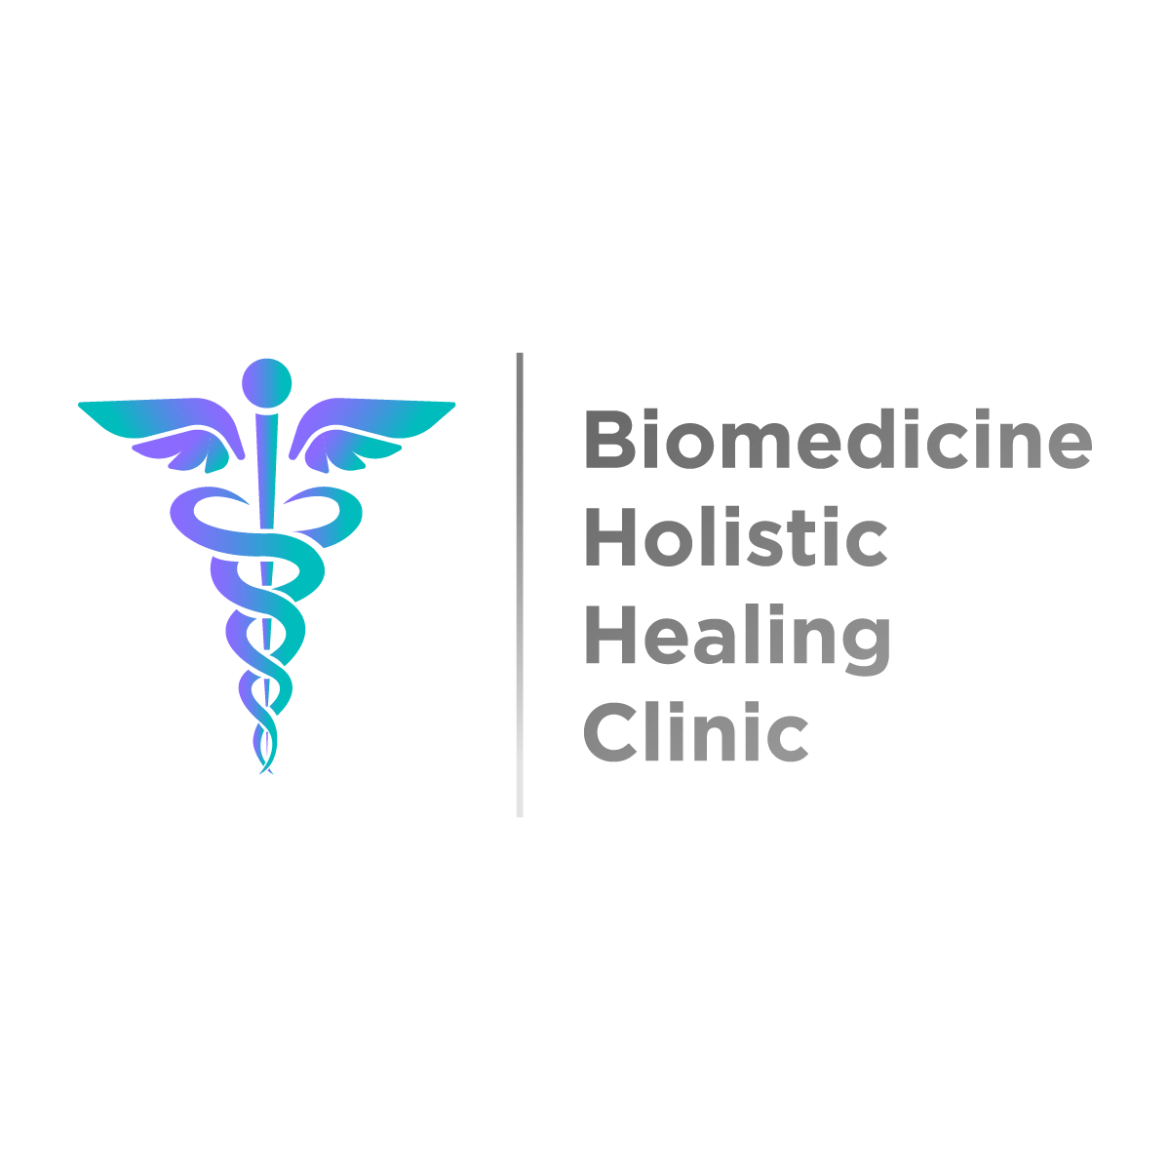 wellness centre, health and holistic healing company in Toronto (logo concept)